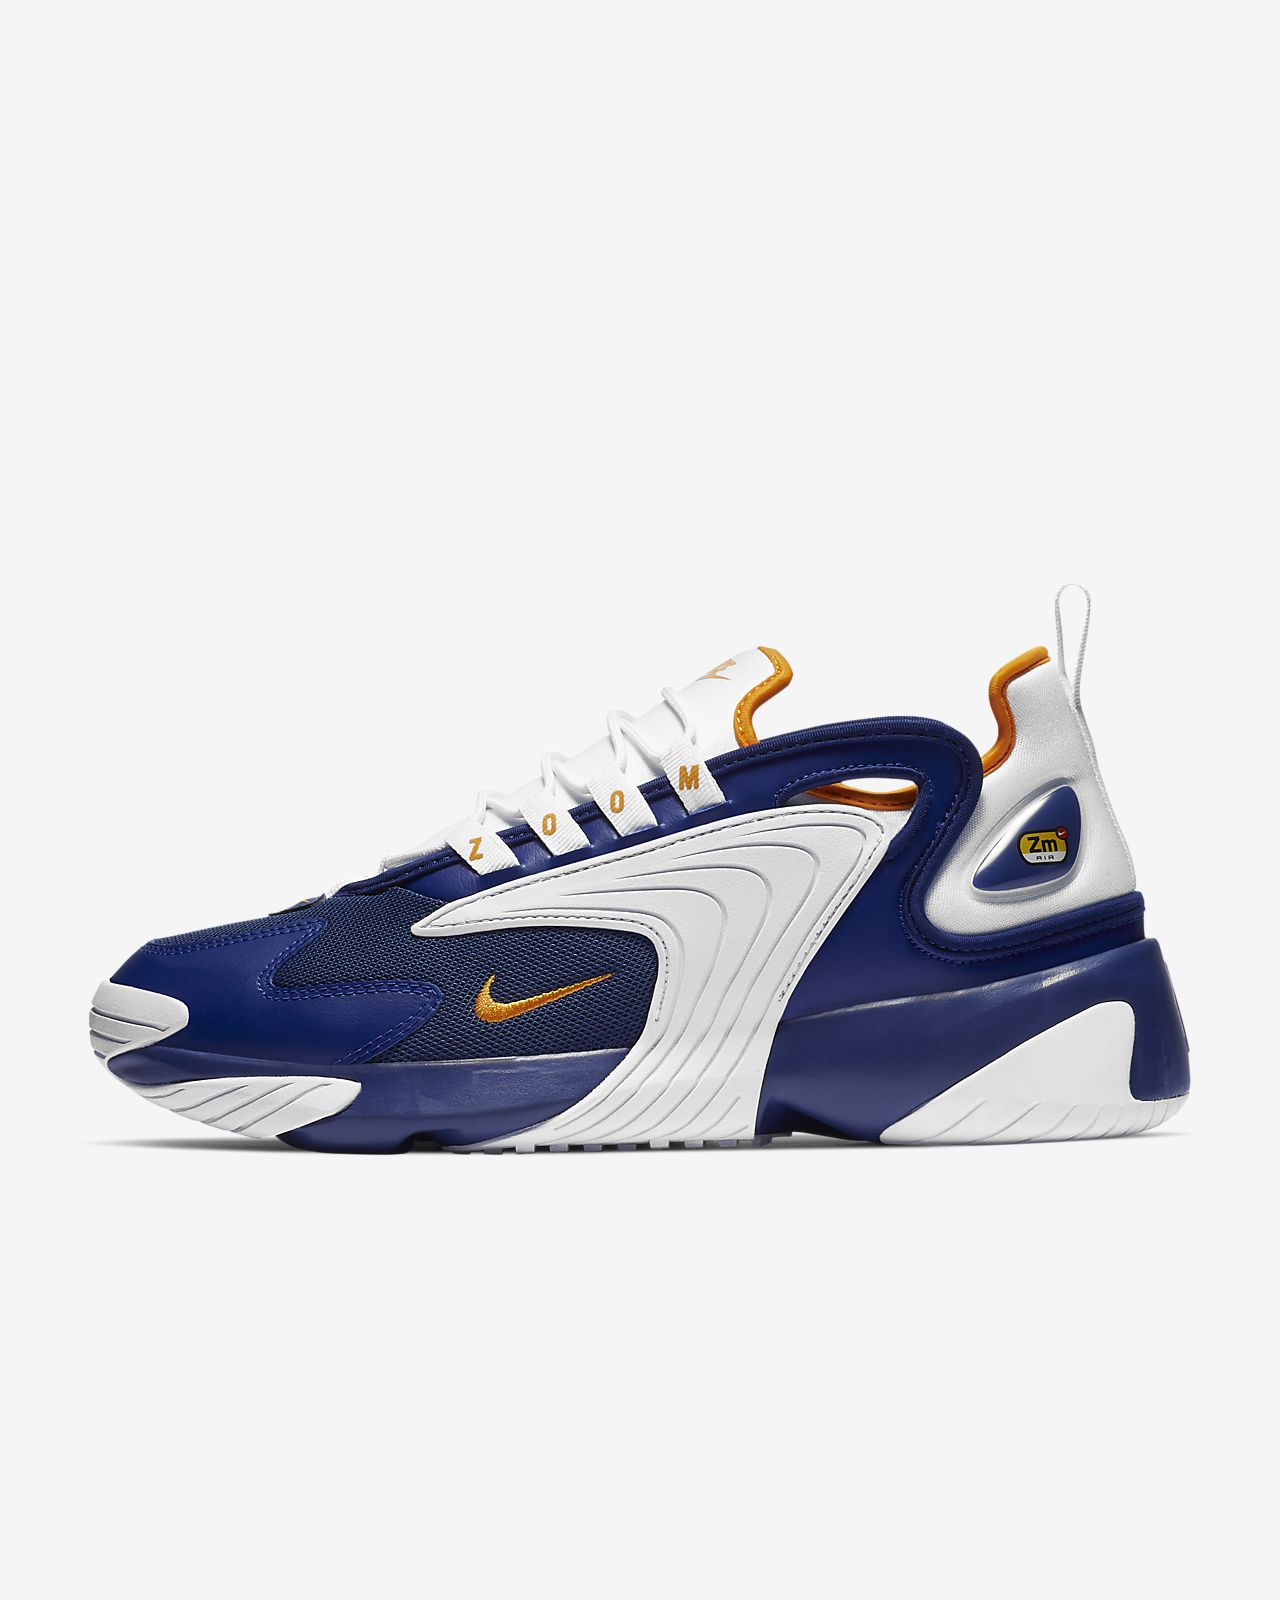 Nike 2k HommeBe Pour Chaussure Zoom ZTOkXiuP